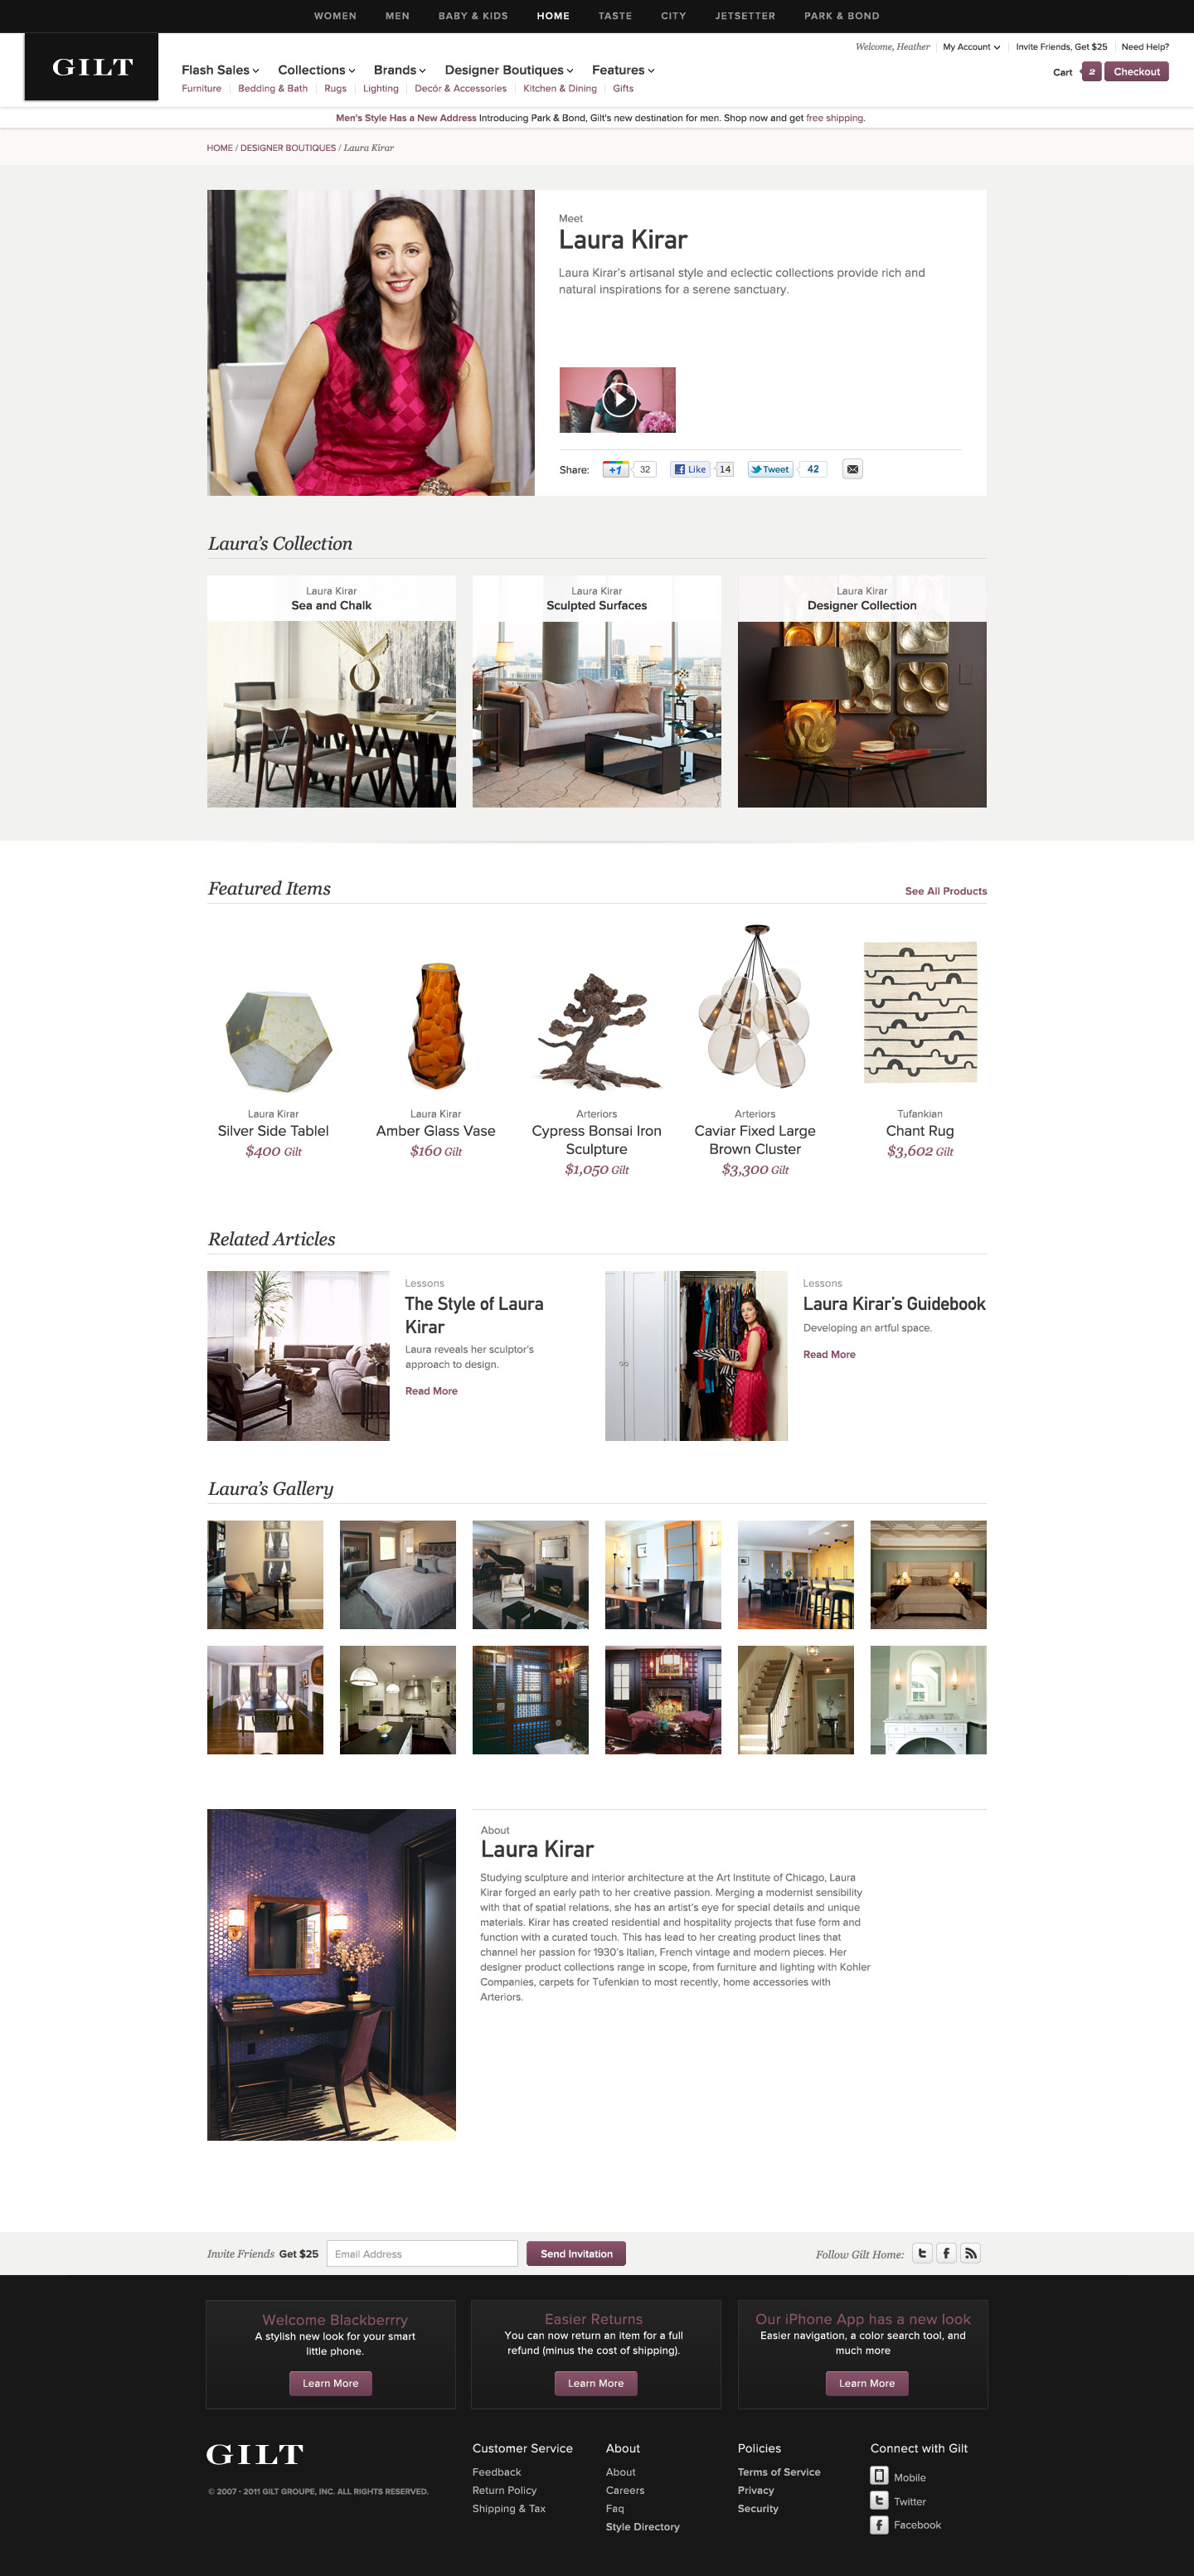 Gilt Home relaunches with designer boutiques, trade products